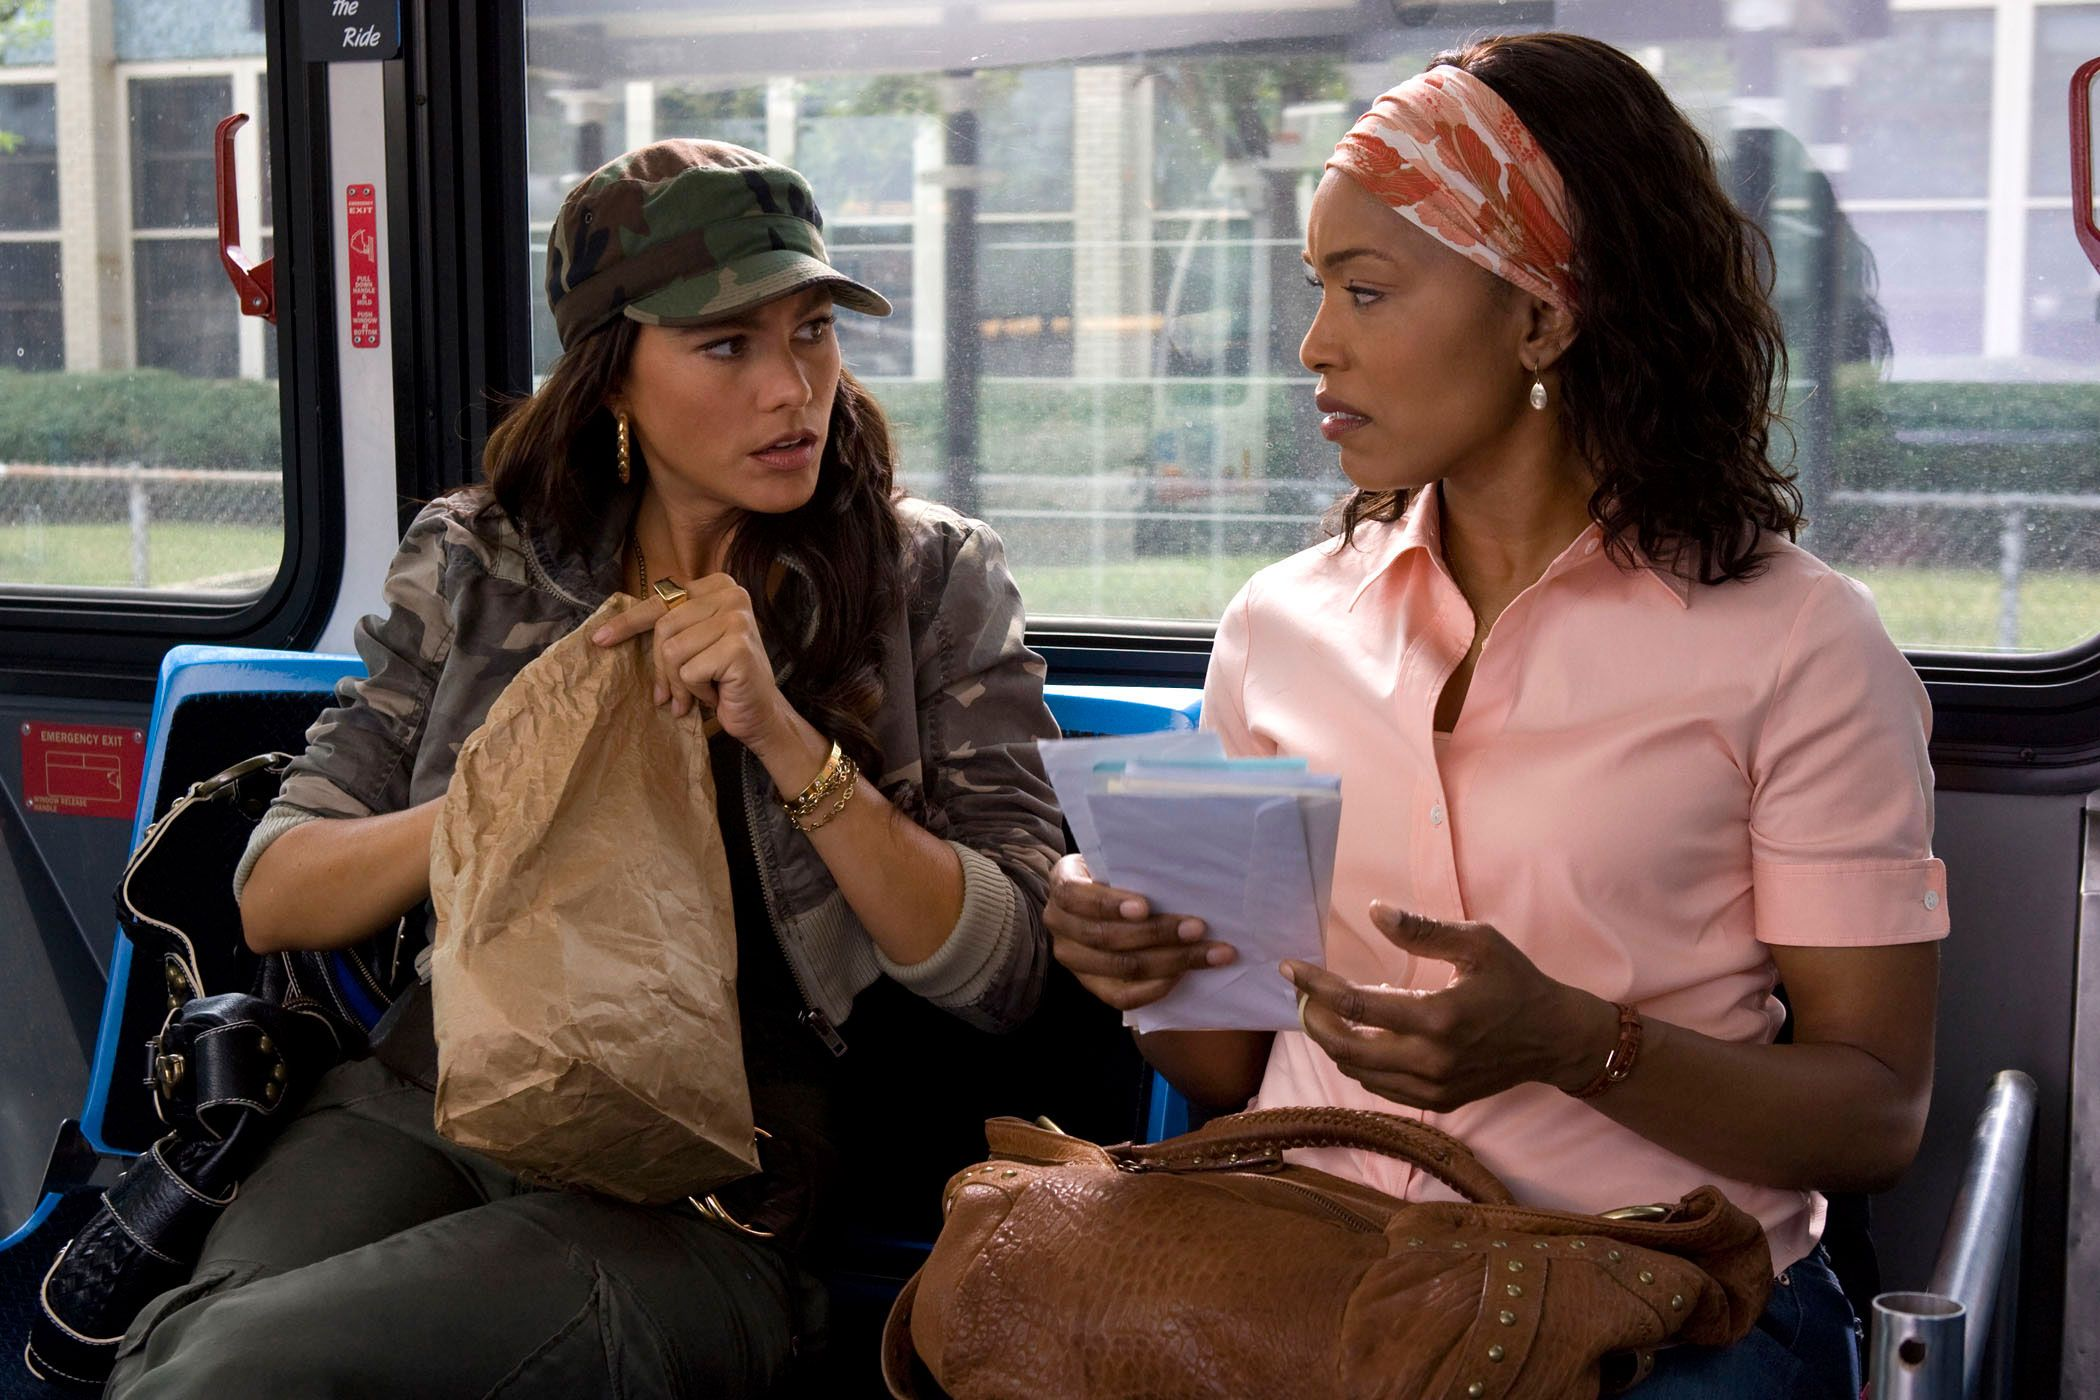 32 Best Tyler Perry Movies and Stage Plays - Best Movies Ranked